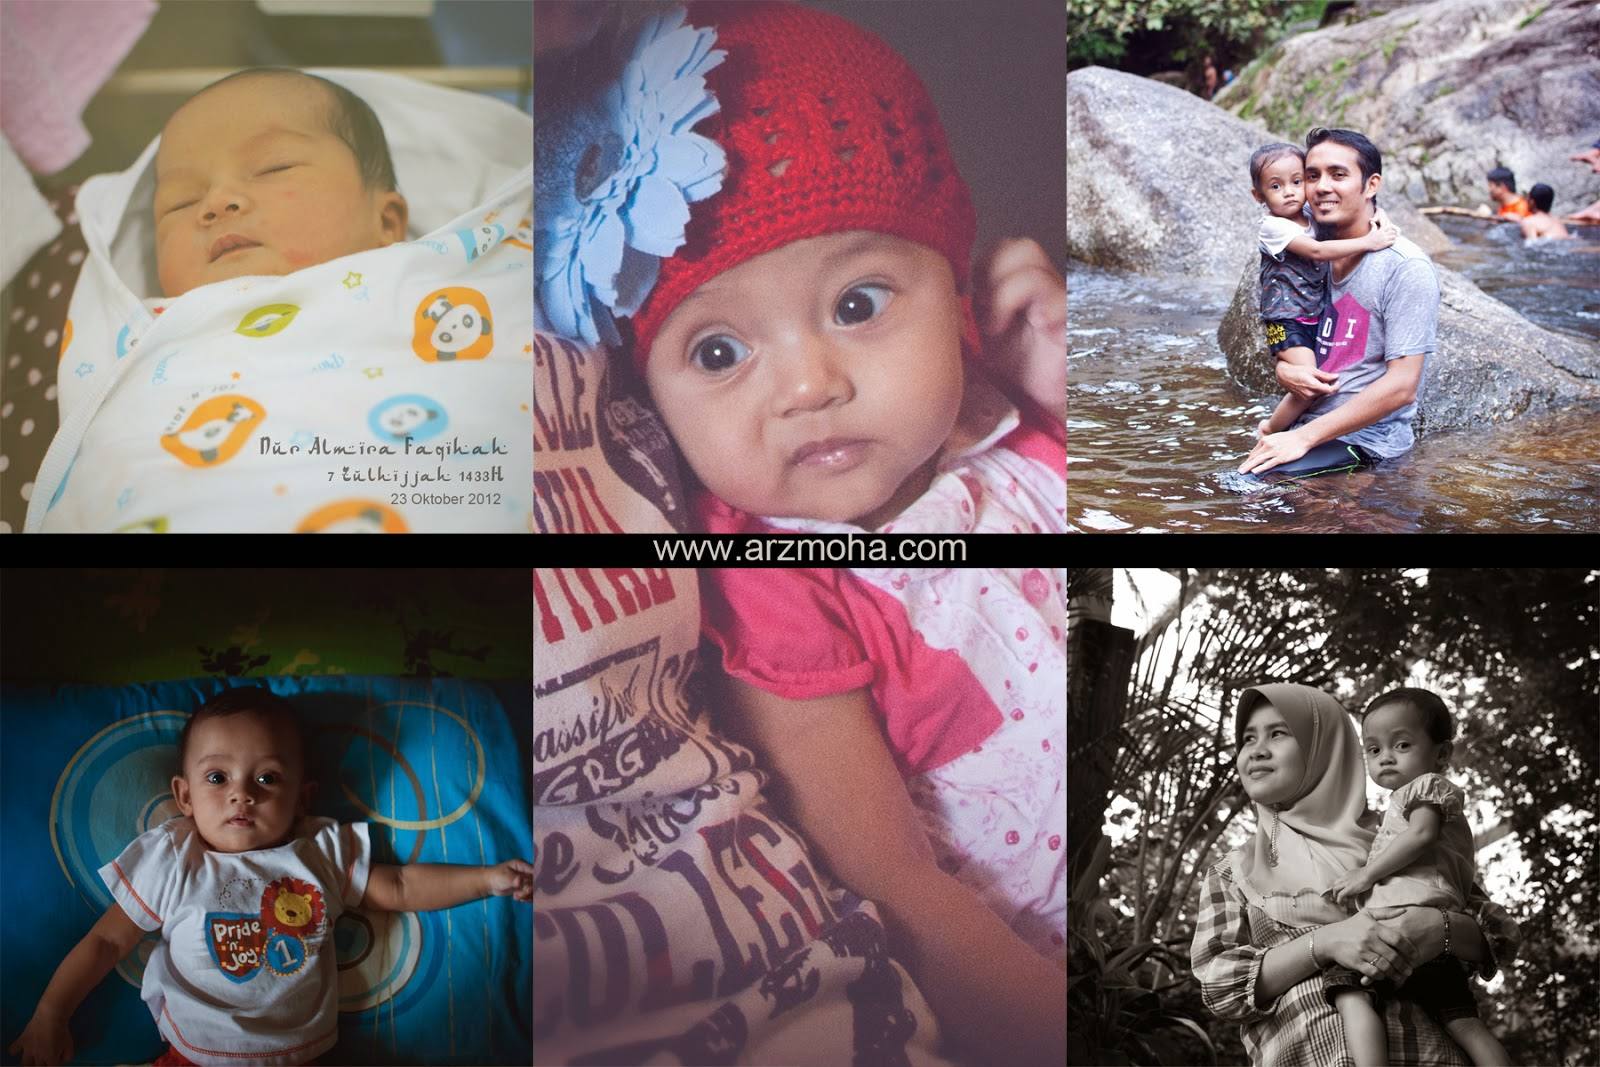 Almira, Faqihah, Nur, Cik Puteri, Koleksi, Collection, kids, a daughter